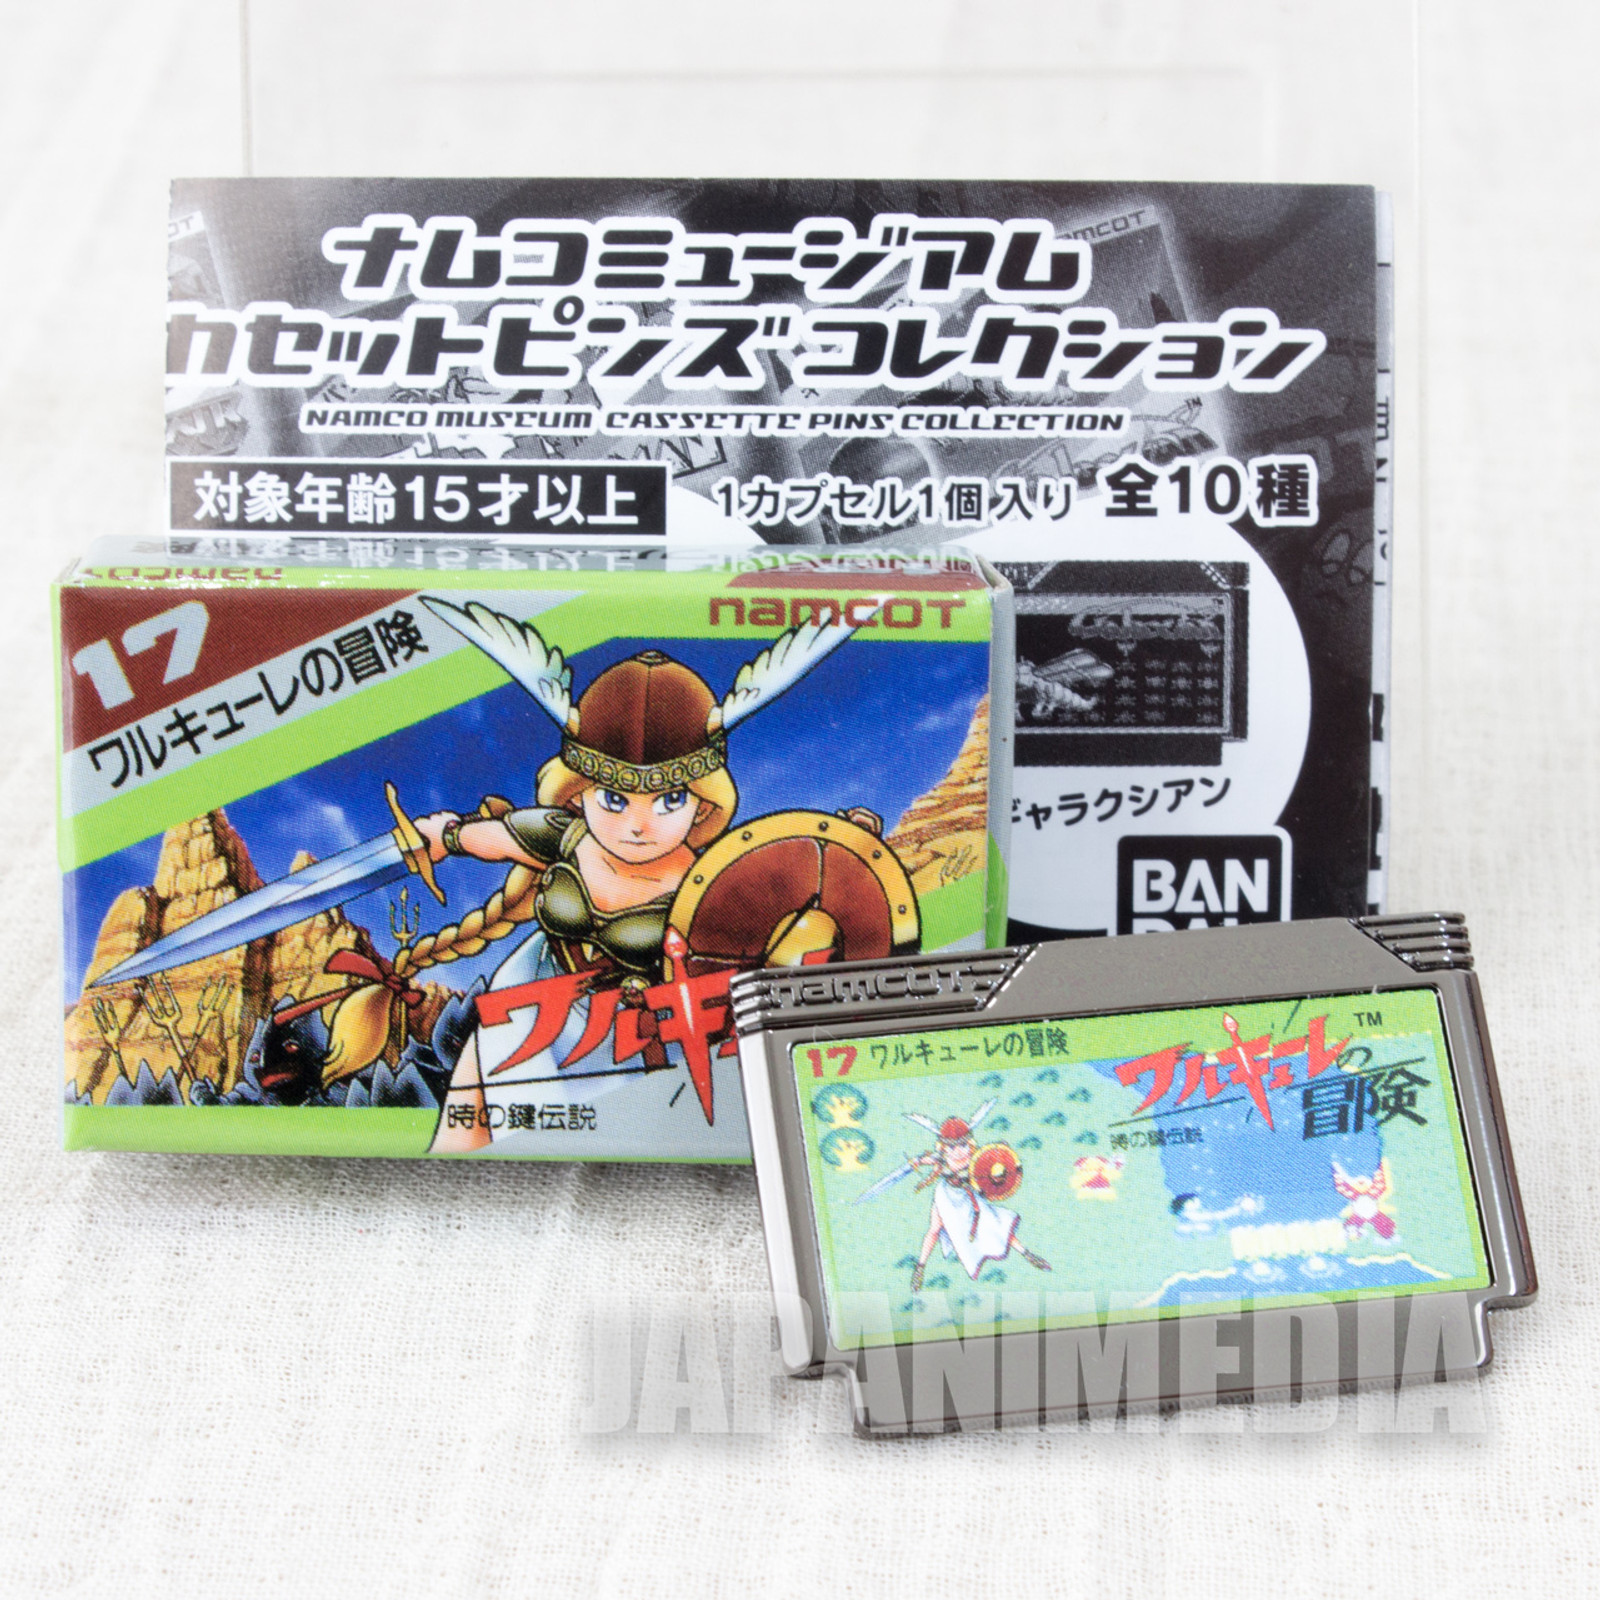 Valkyrie no Boken Namco Museum Cassette Pins Collection BANDAI JAPAN FAMICOM NEC